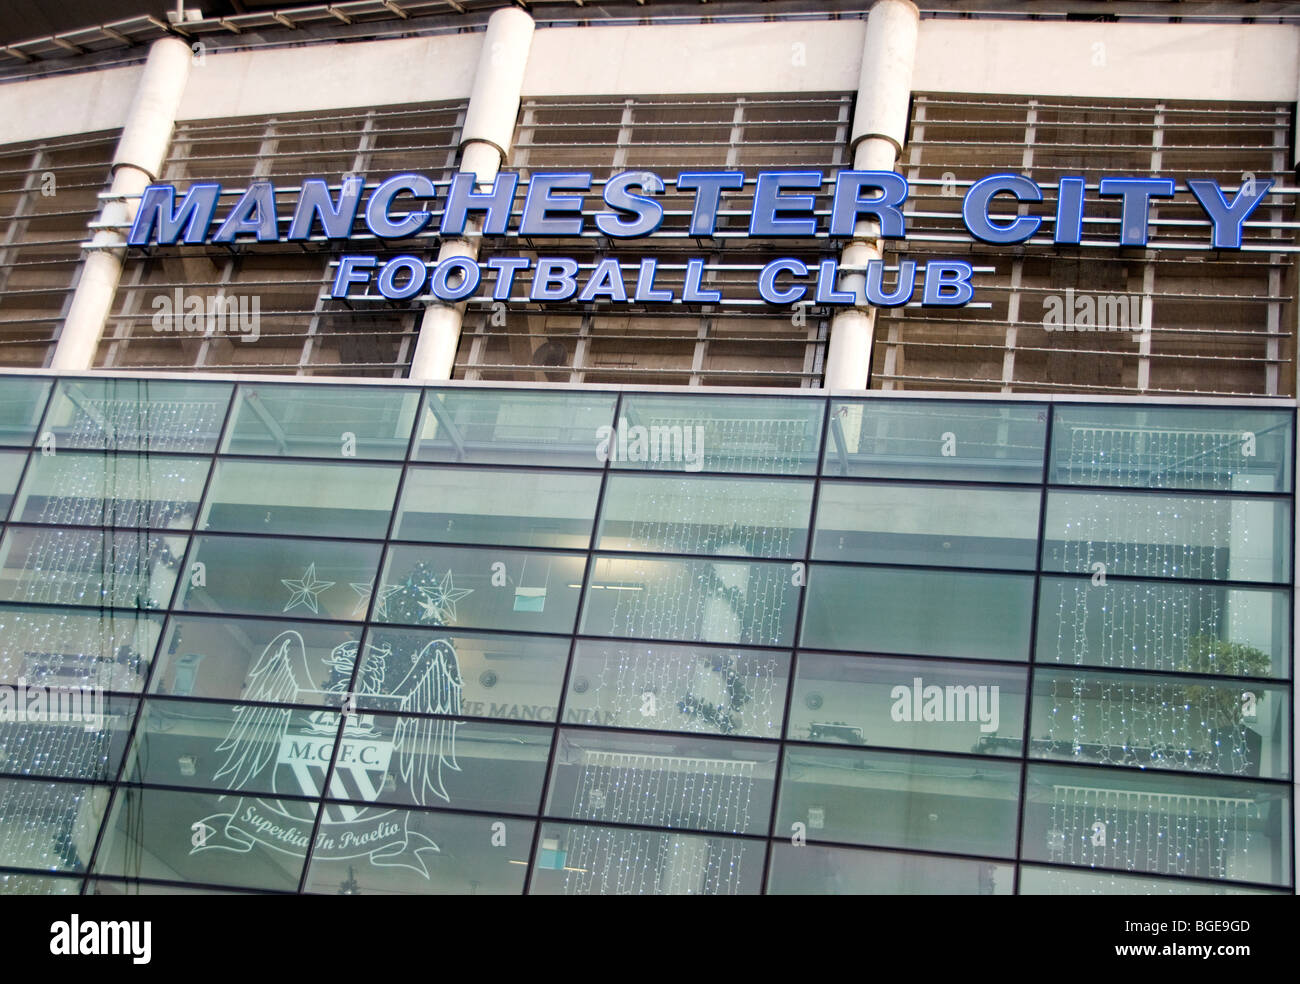 Manchester City's Etihad football stadium in England - Stock Image